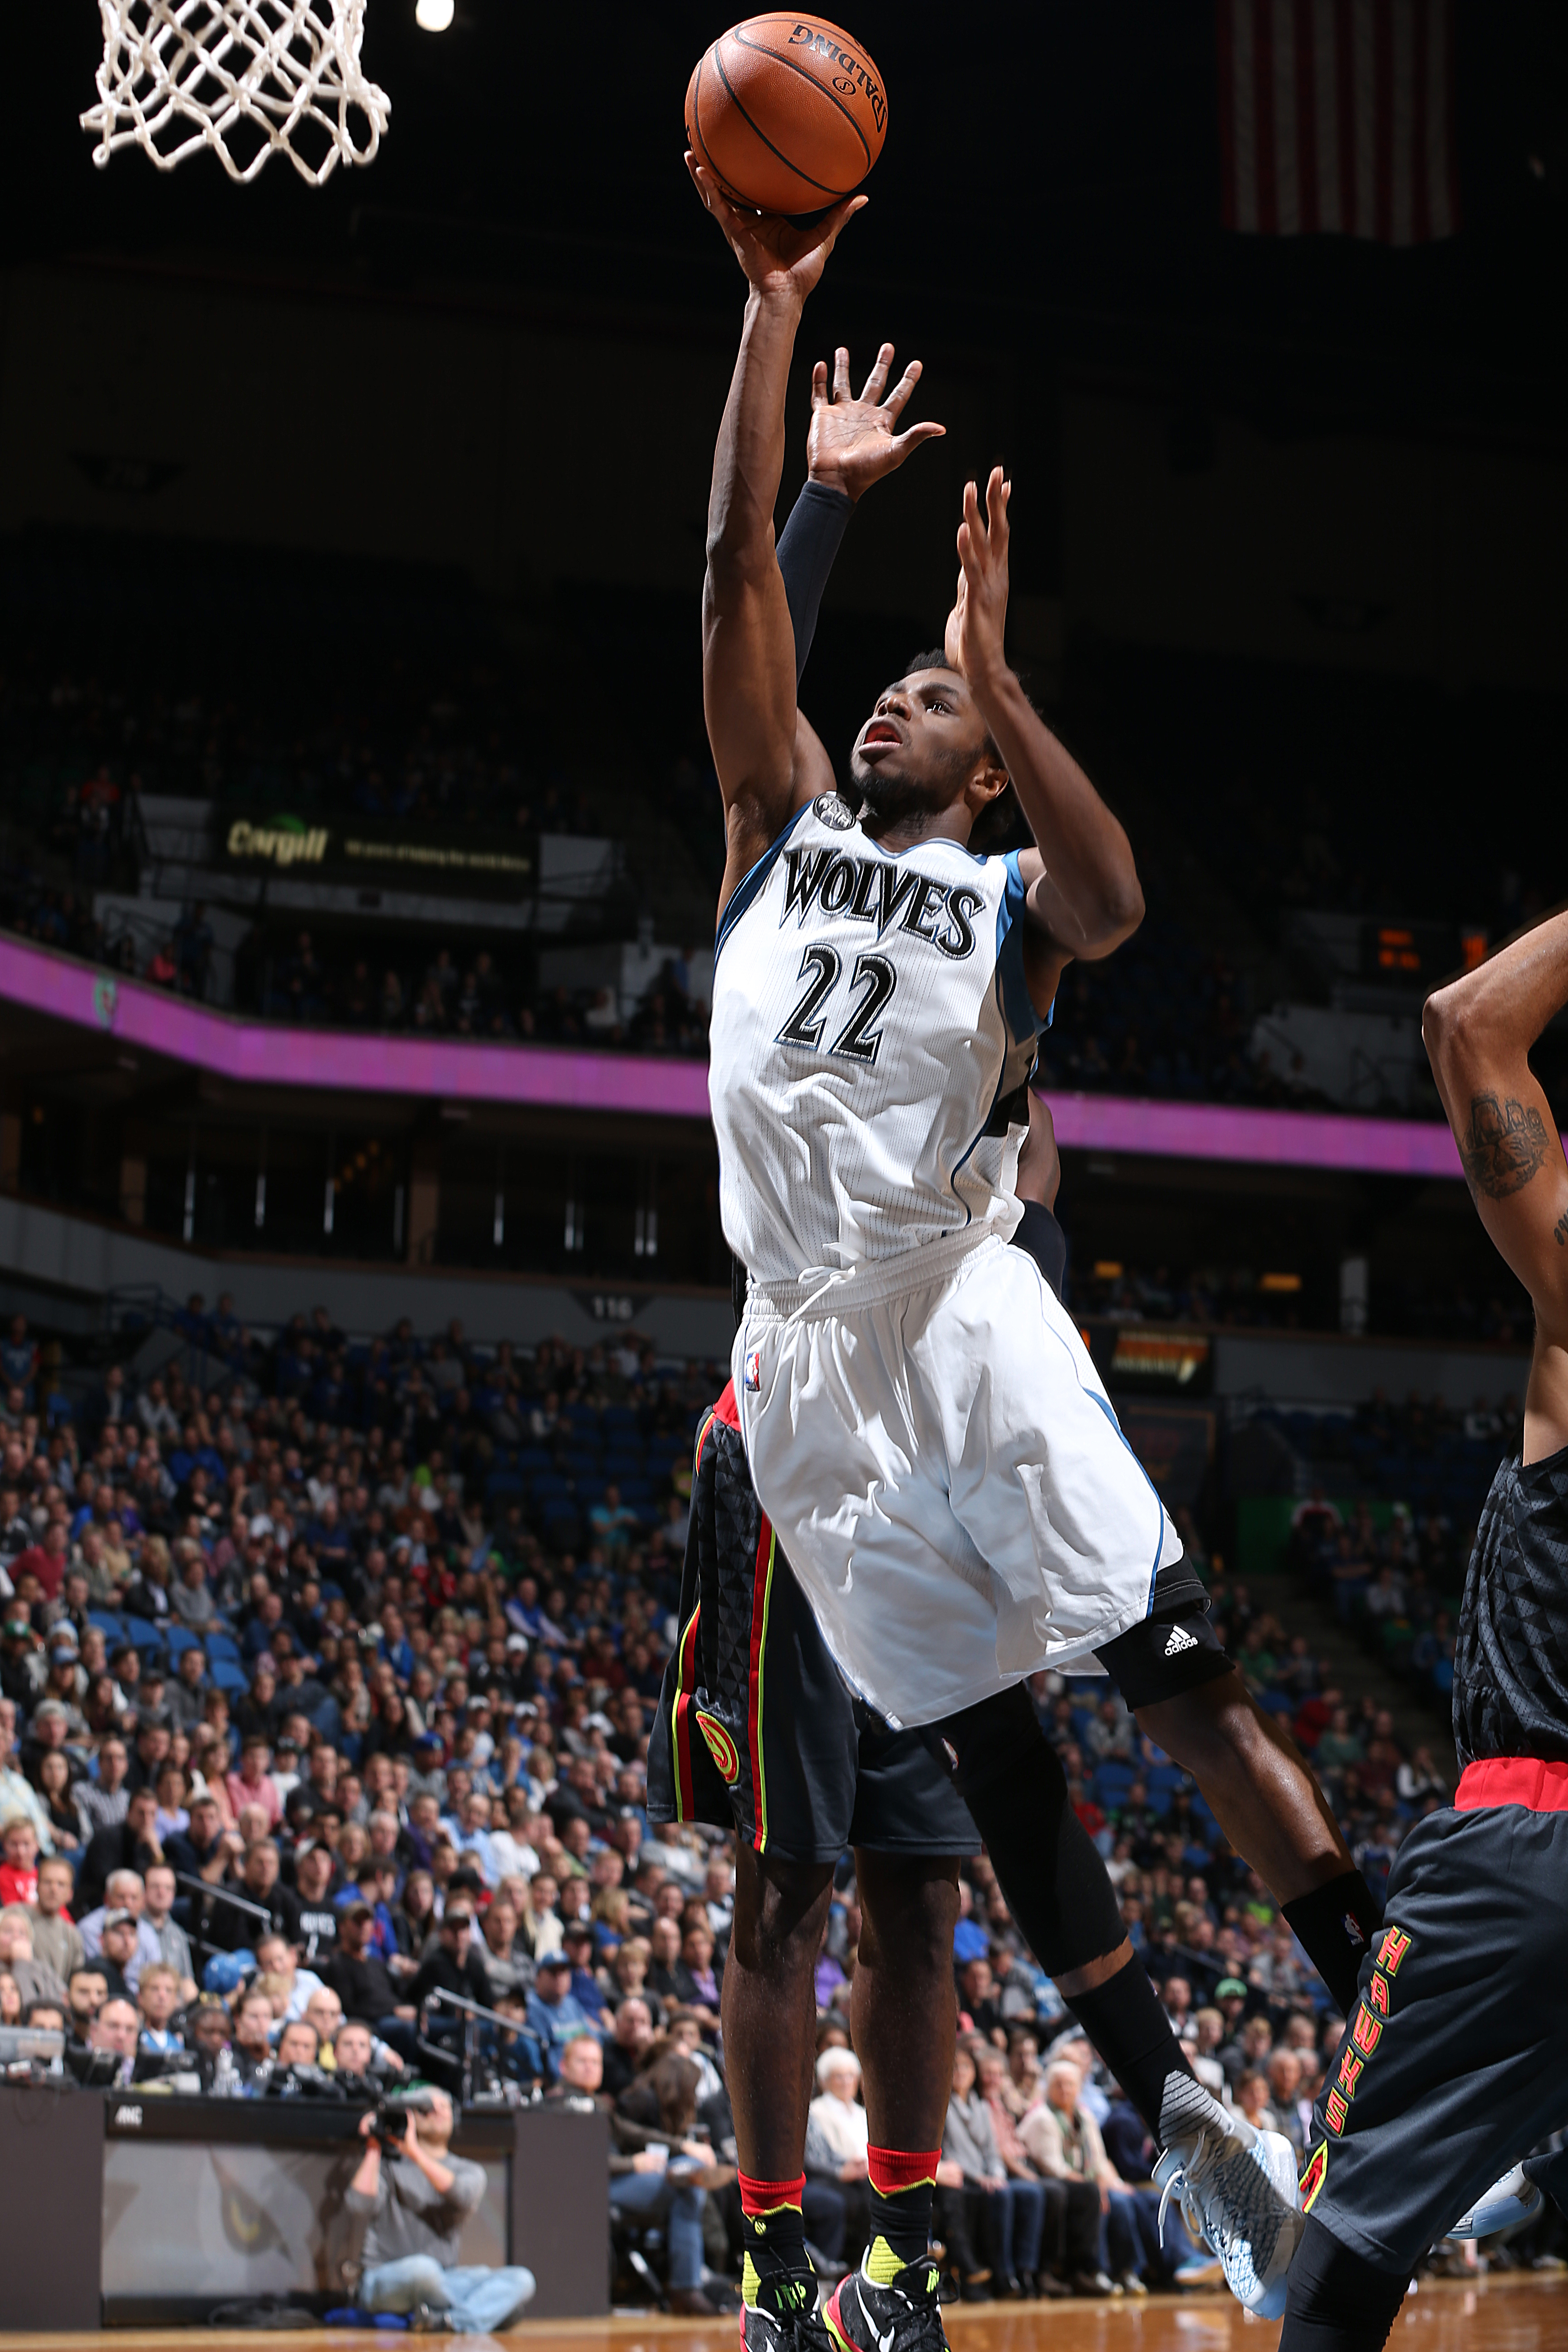 MINNEAPOLIS, MN -  NOVEMBER 25:  Andrew Wiggins #22 of the Minnesota Timberwolves shoots the ball against the Atlanta Hawks on November 25, 2015 at Target Center in Minneapolis, Minnesota. (Photo by David Sherman/NBAE via Getty Images)